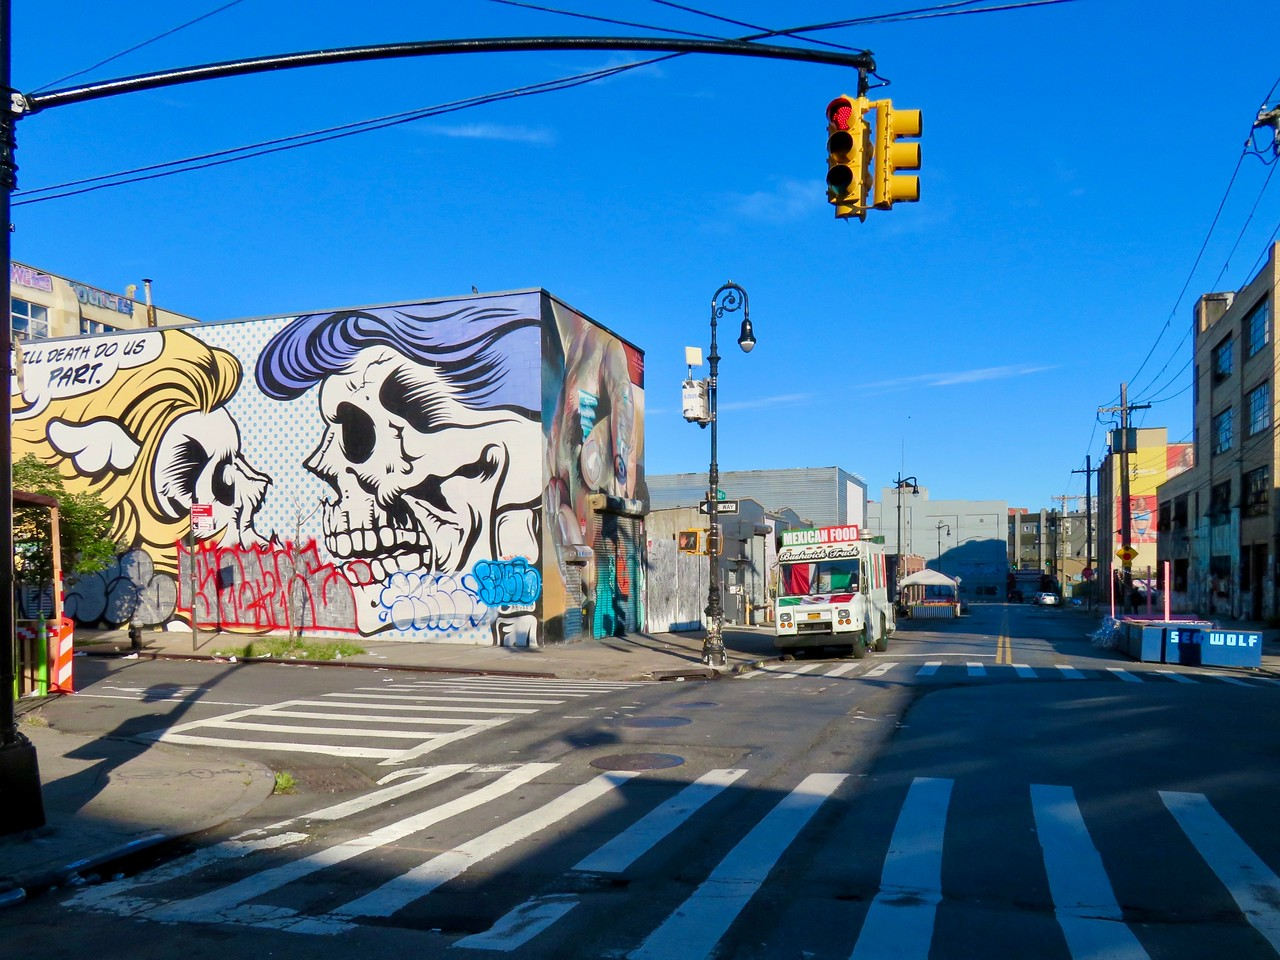 wycoff avenue in bushwick brooklyn - dface til death do us part mural street art